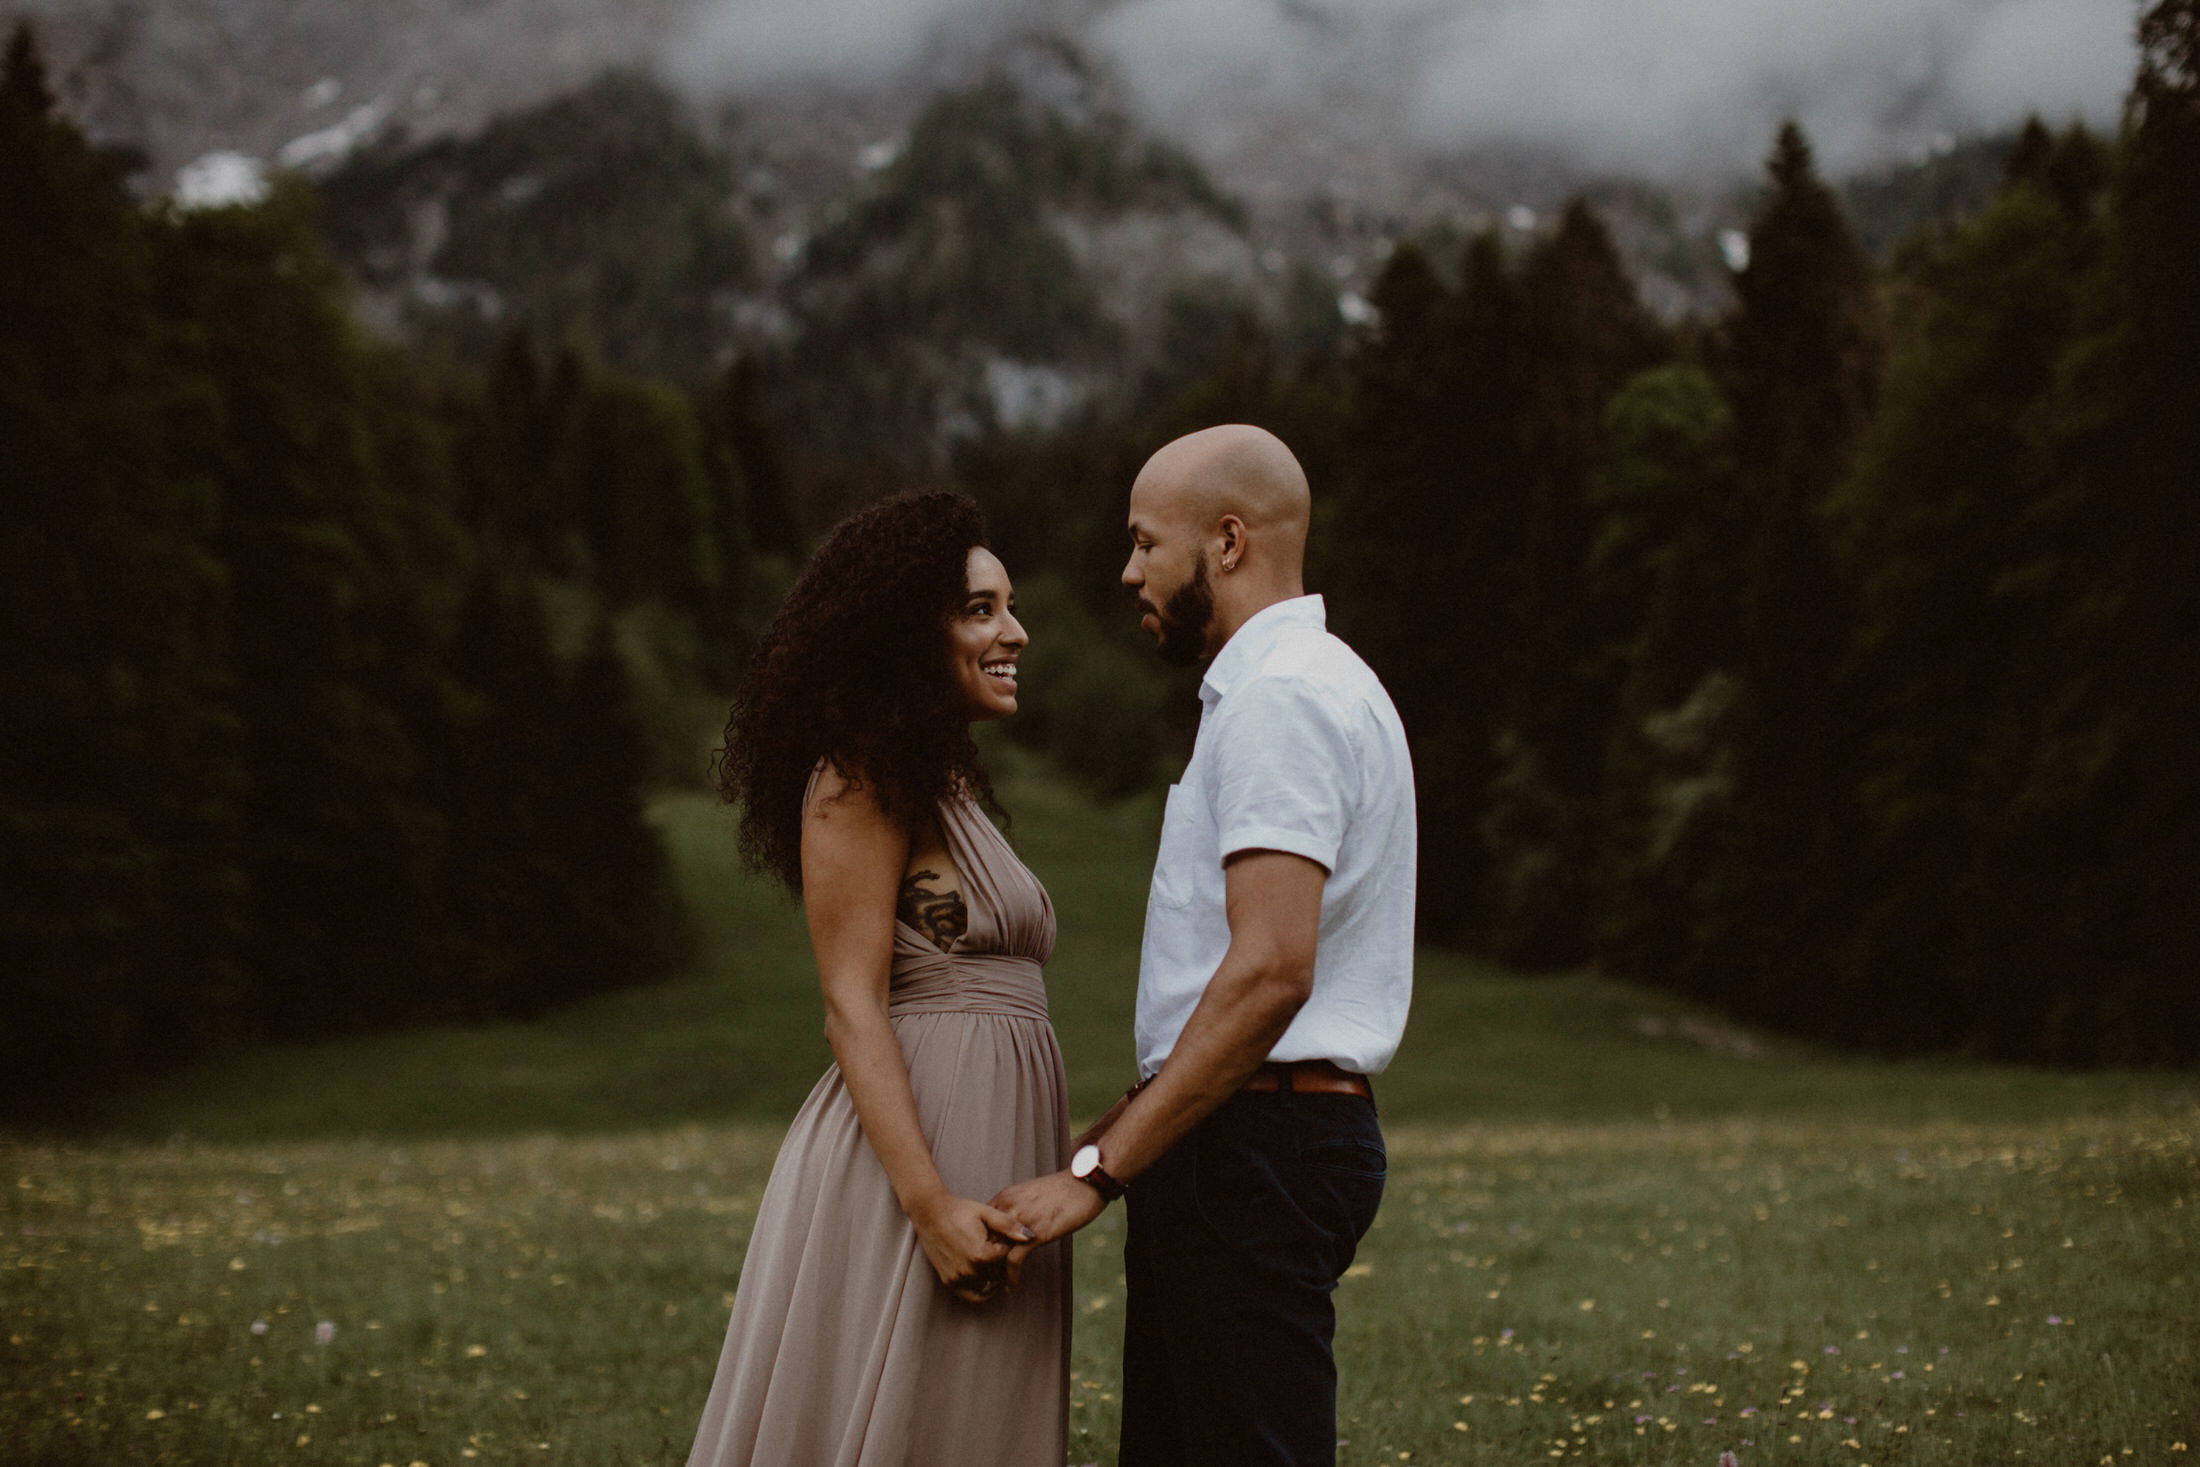 breanna-and-justin-engagement-photos-eibsee-garmisch-partenkirchen-0008